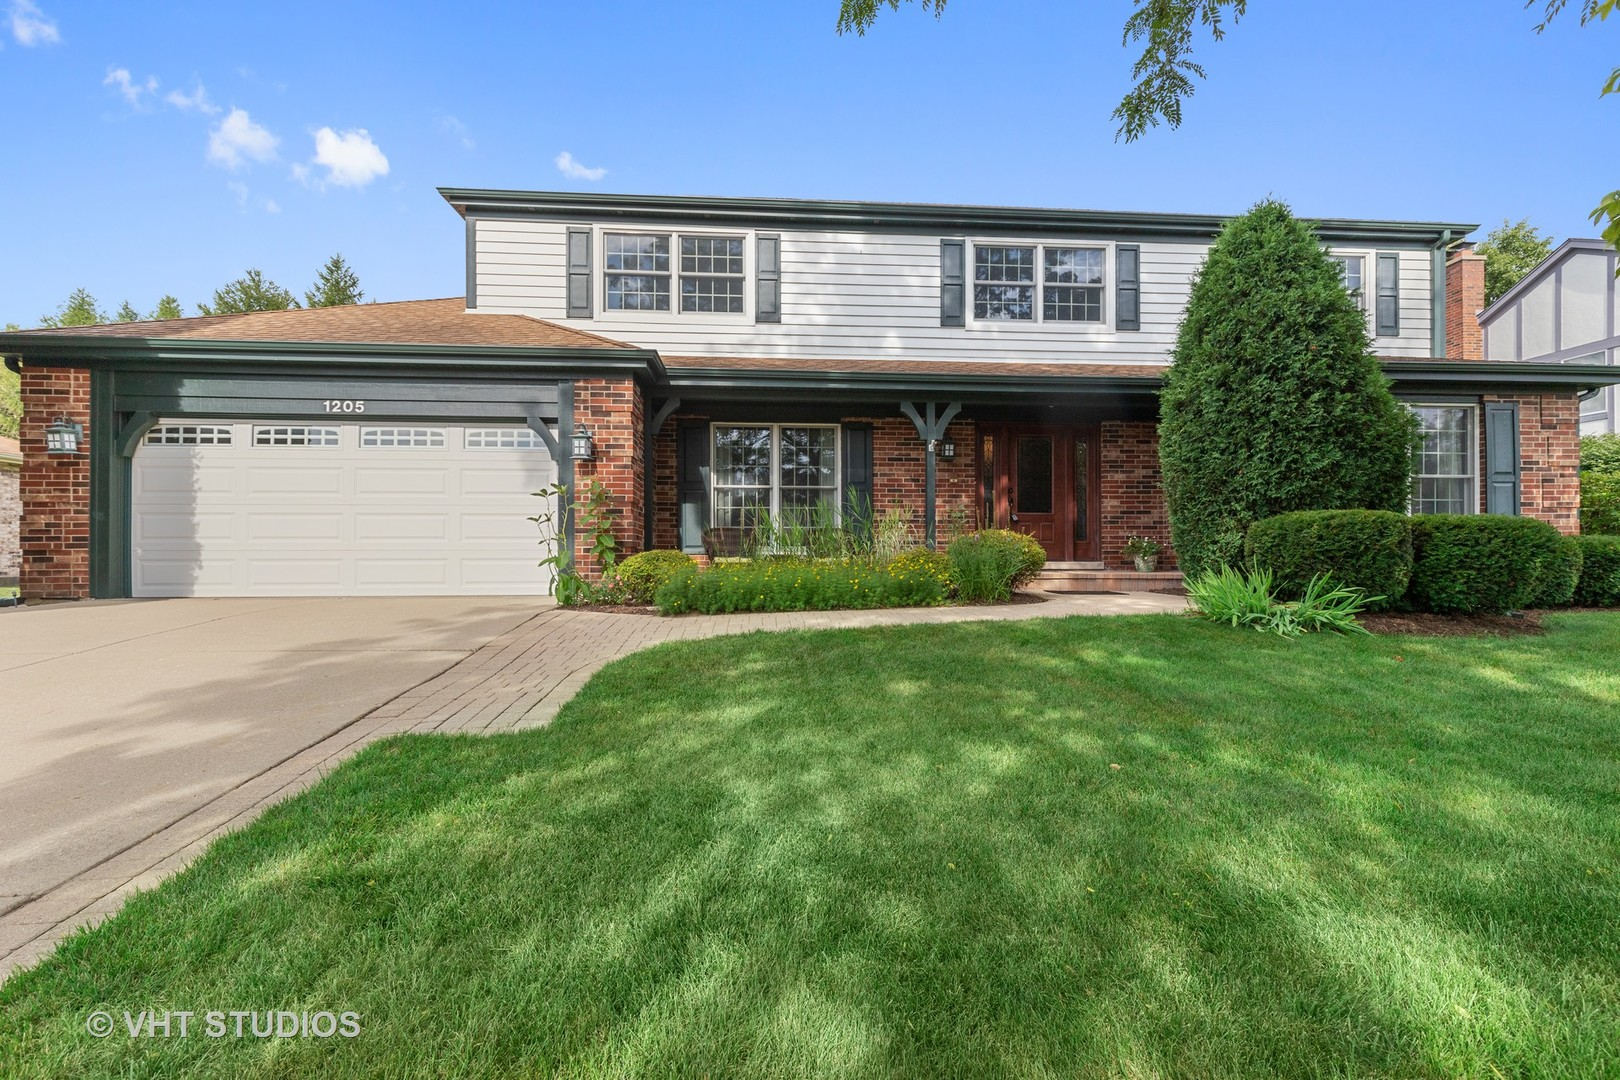 1205 Virginia Avenue, Libertyville, Illinois 60048